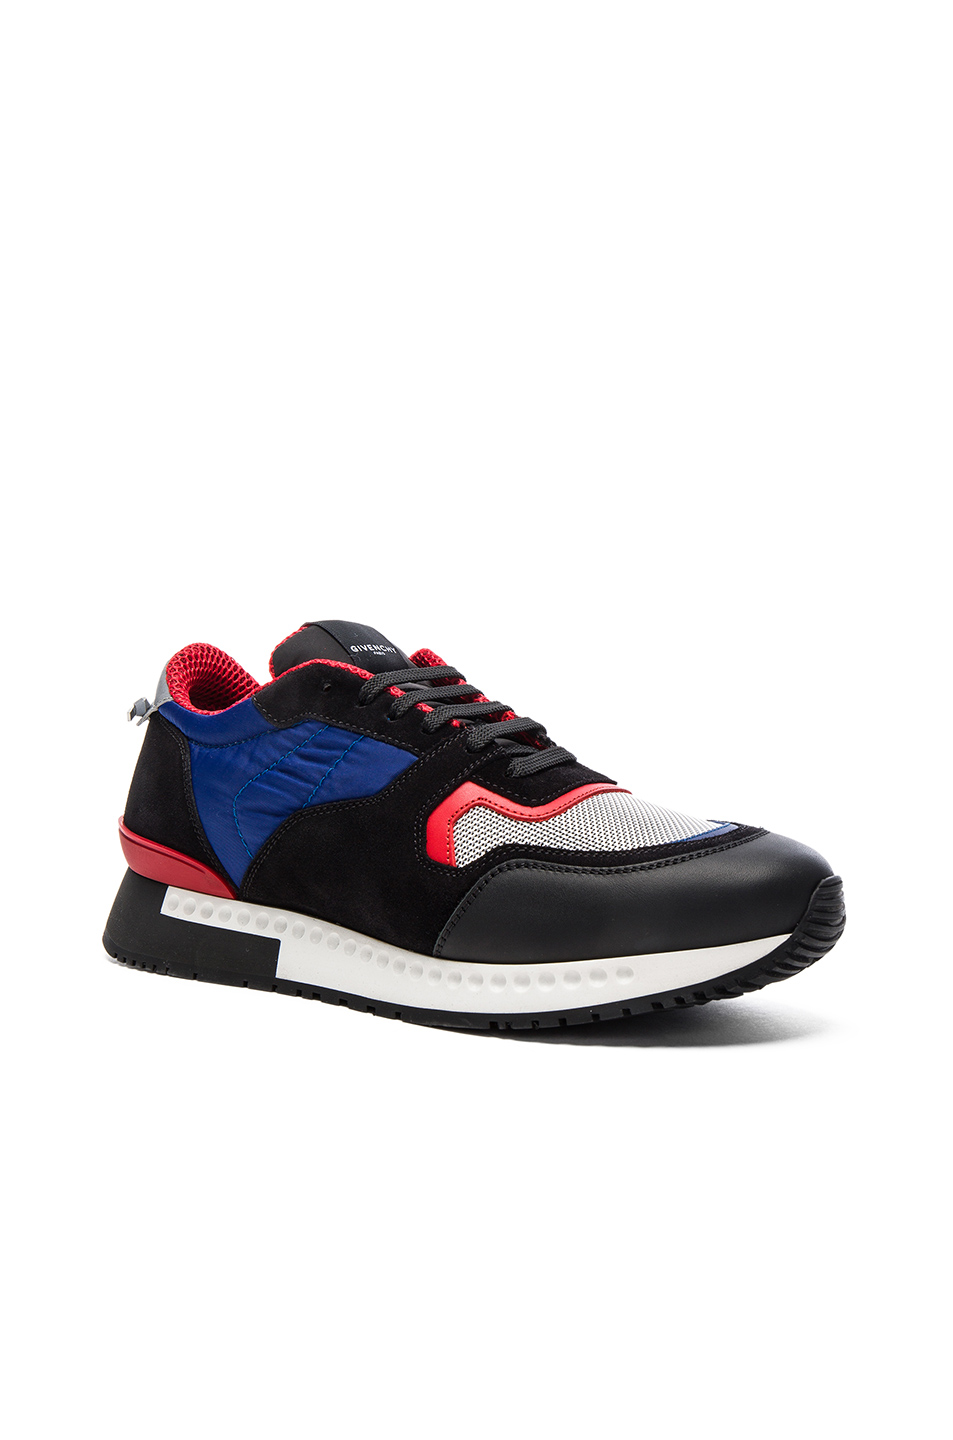 Givenchy Runner Active Sneakers in Black,Blue